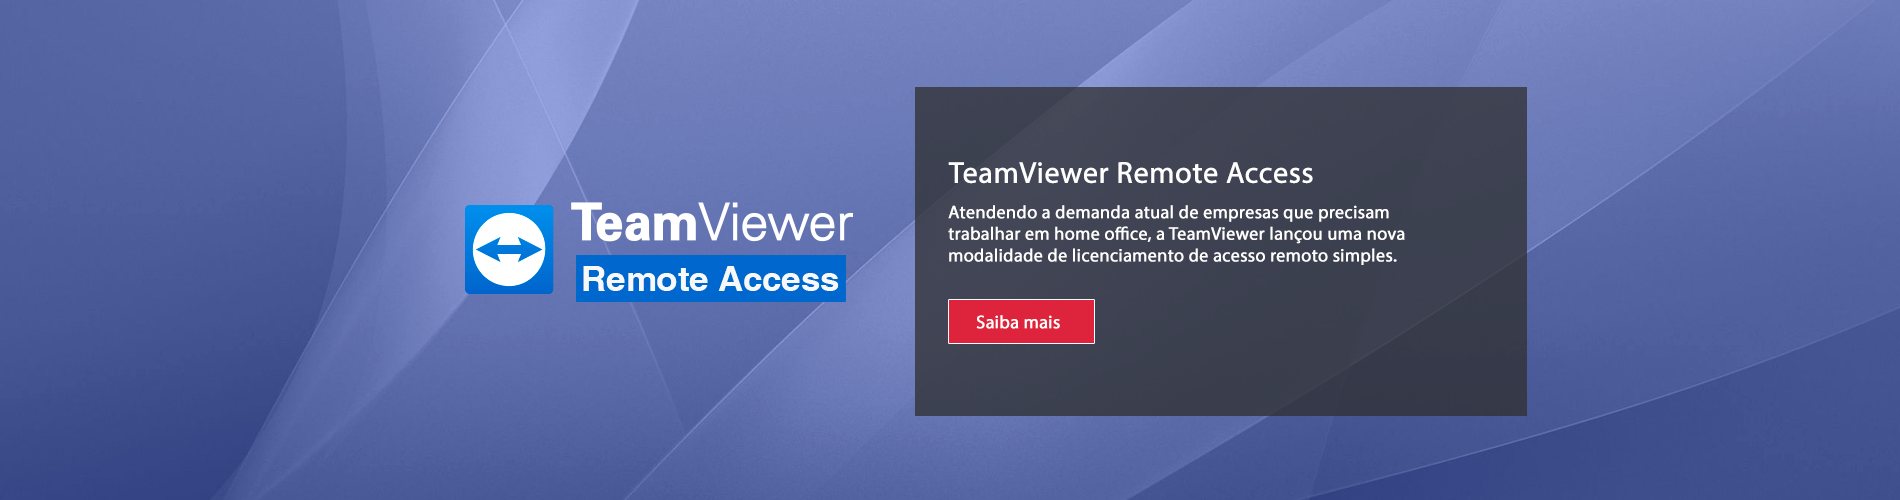 slide_teamviewer-remote-acess